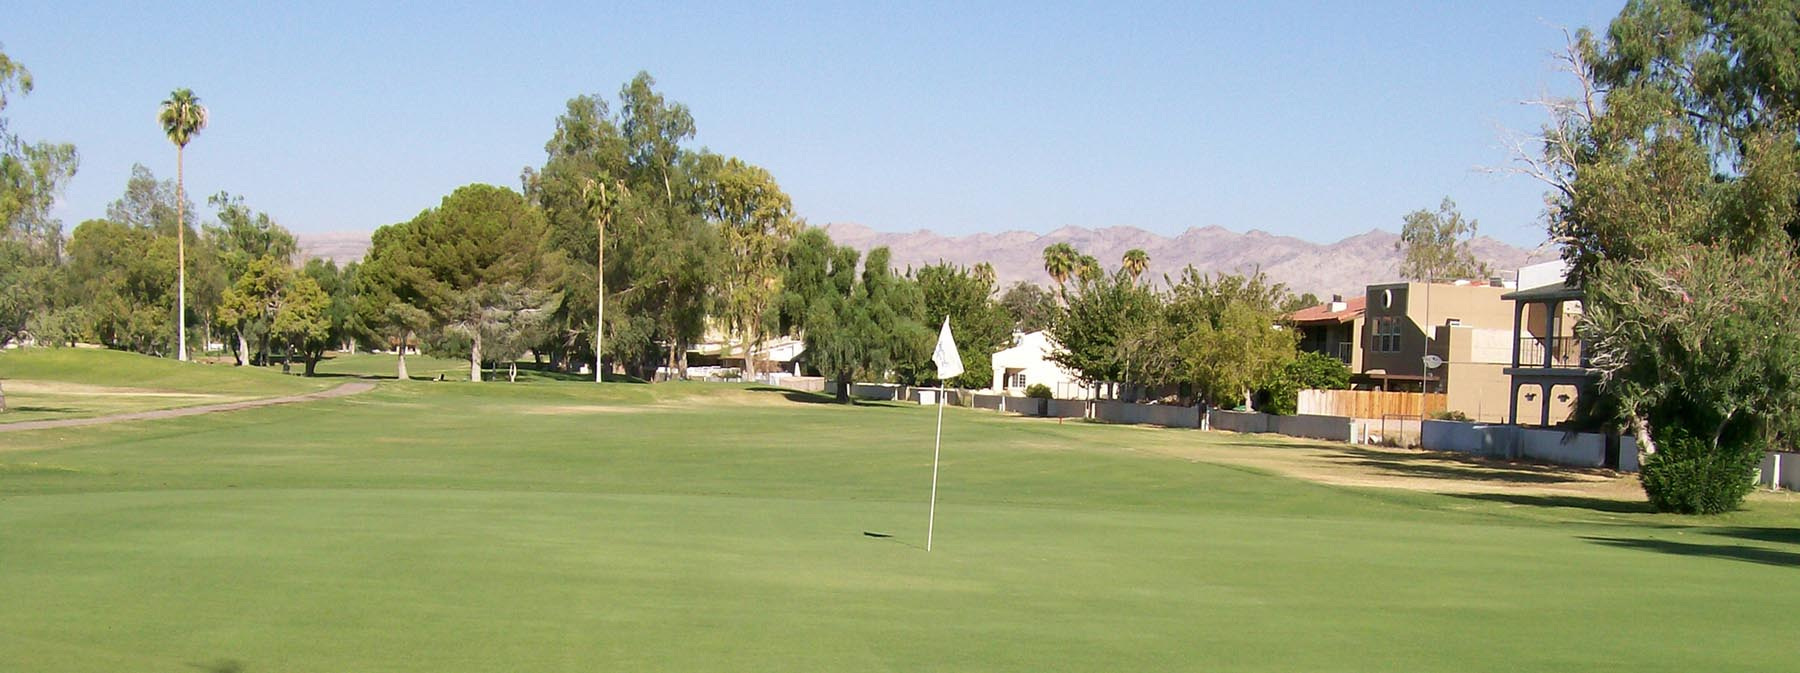 image is view of chaparral fairway and tee